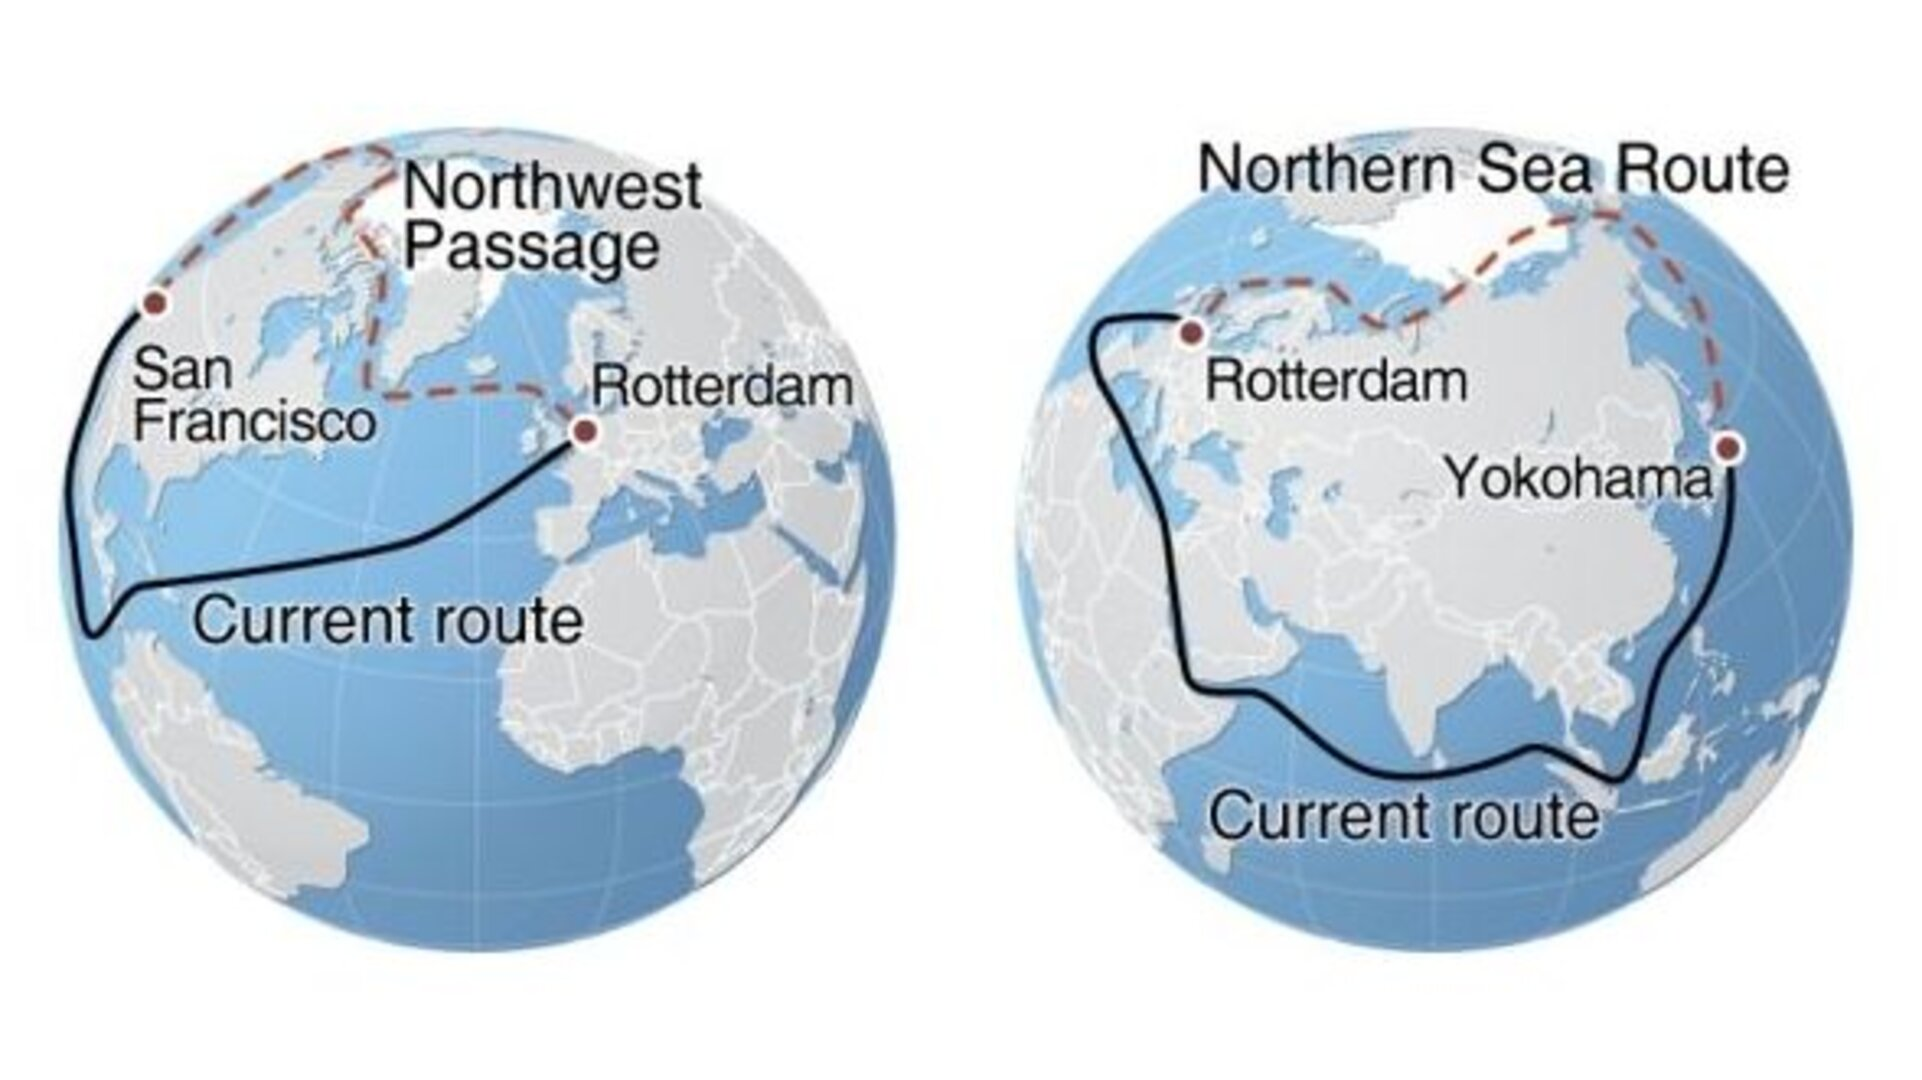 New Arctic routes compared to current routes